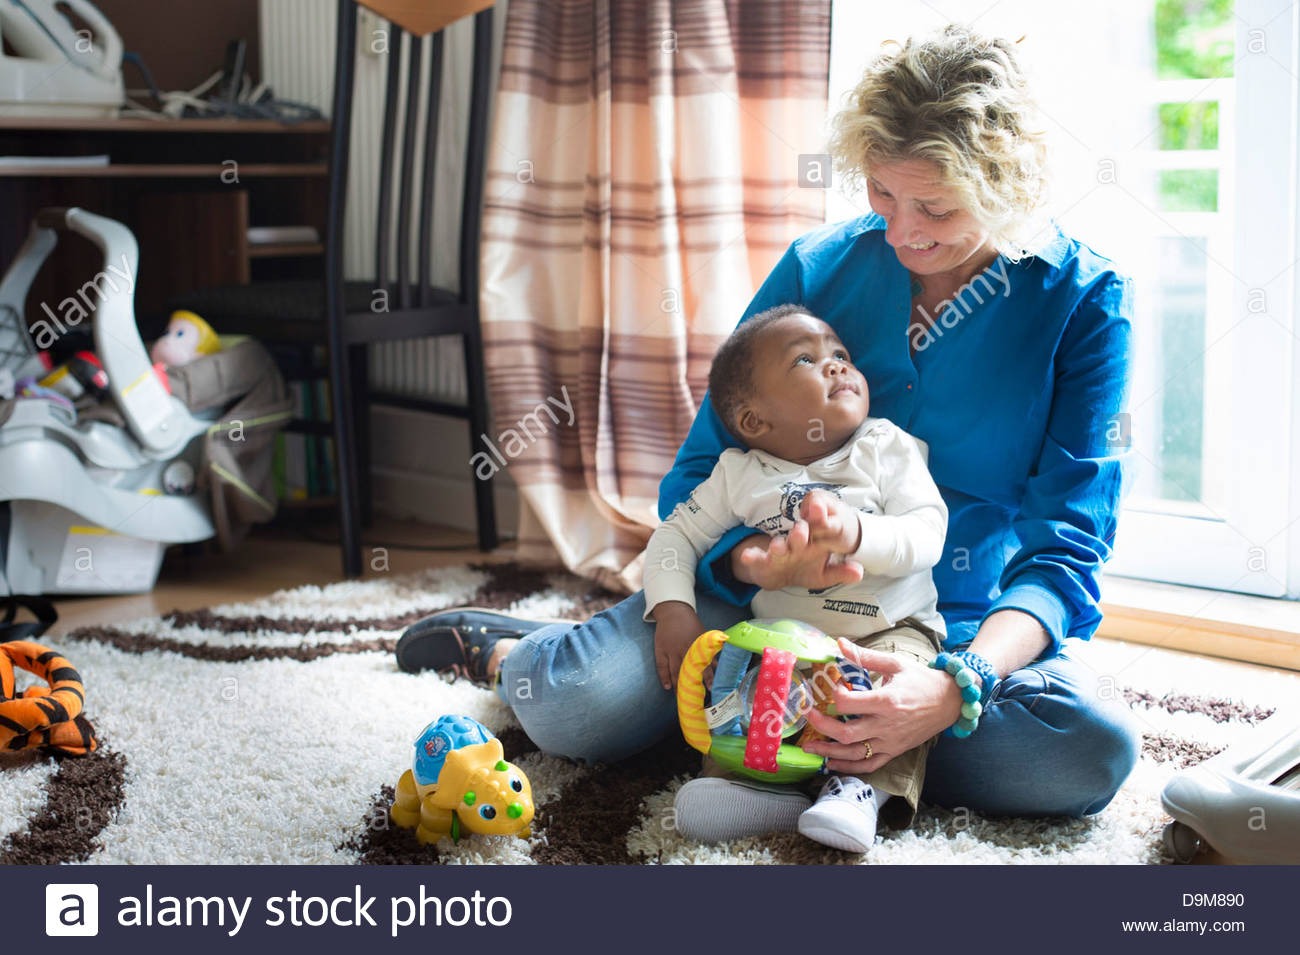 Woman playing with her adopted baby boy - Stock Image